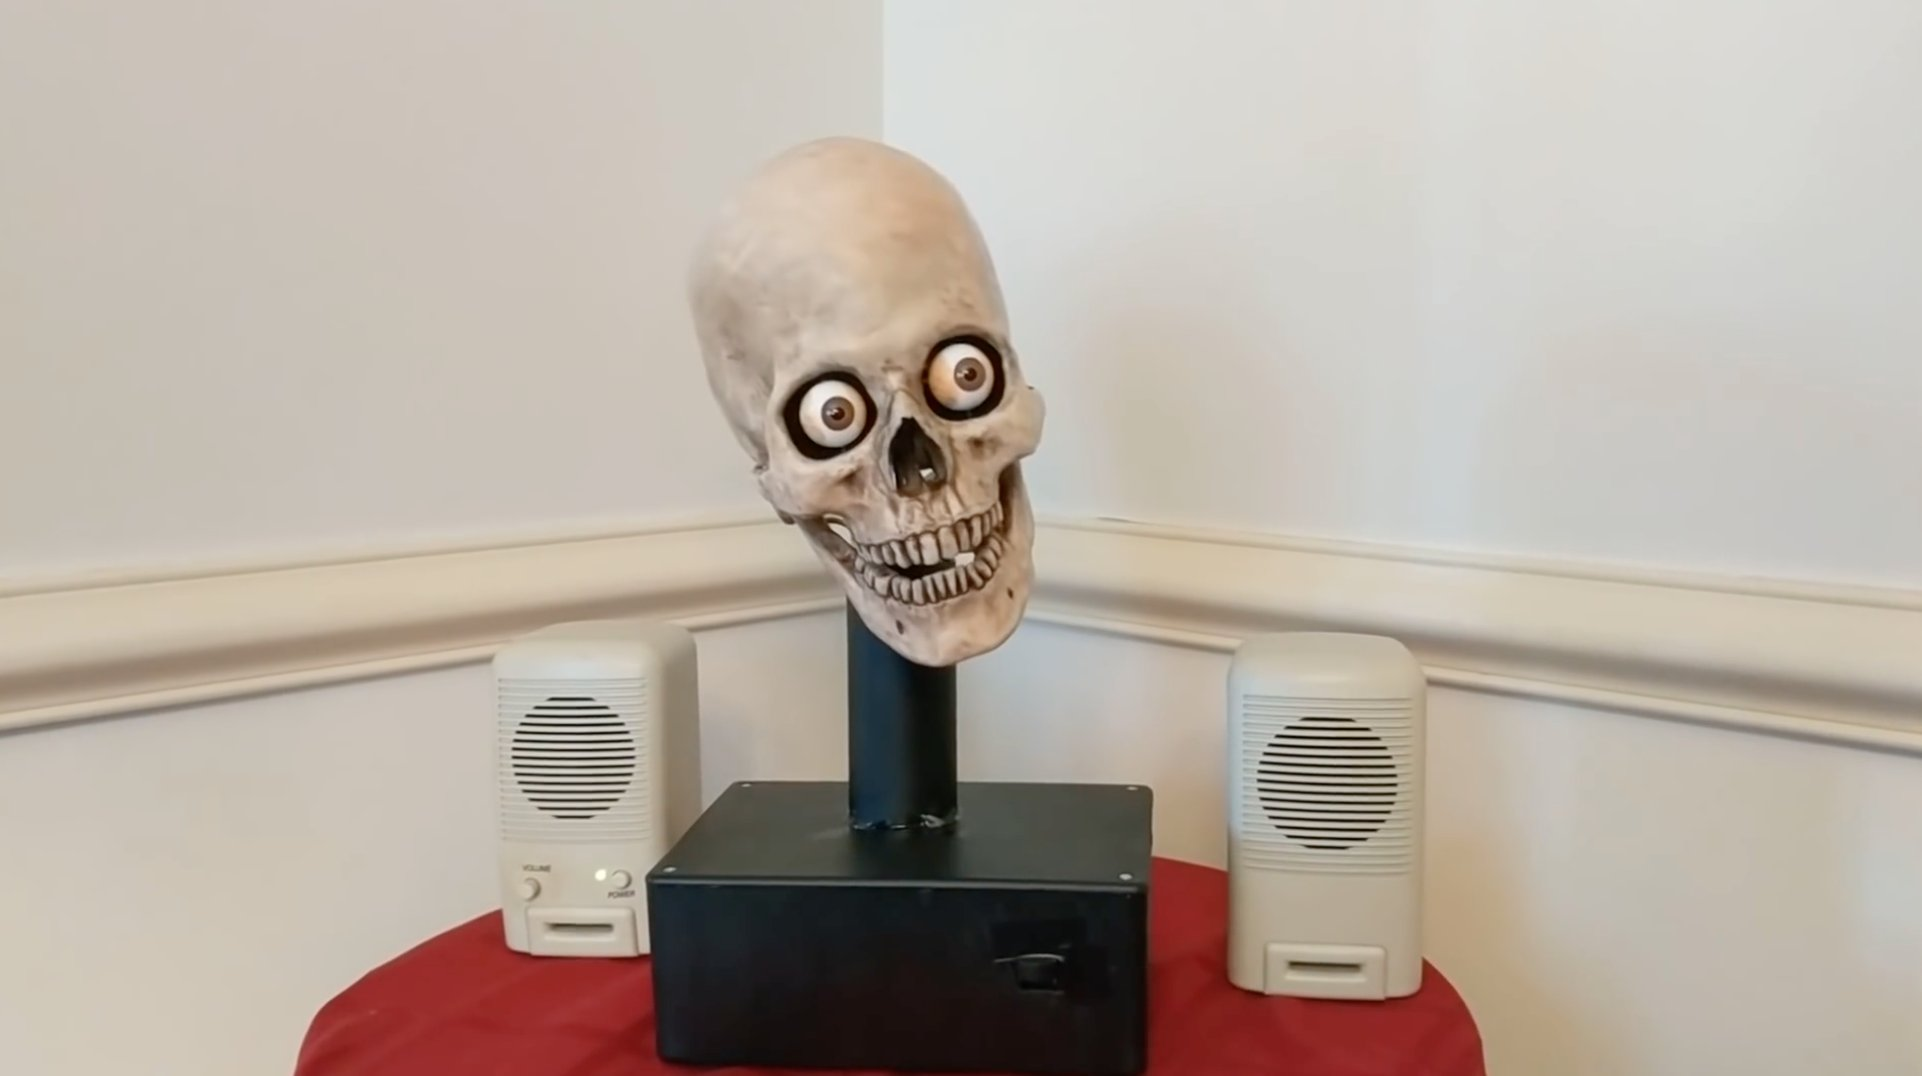 This guy turned his #Alexa into a creepy talking skull: https://t.co/oS3lZ3moRr https://t.co/6MvWrArvsI